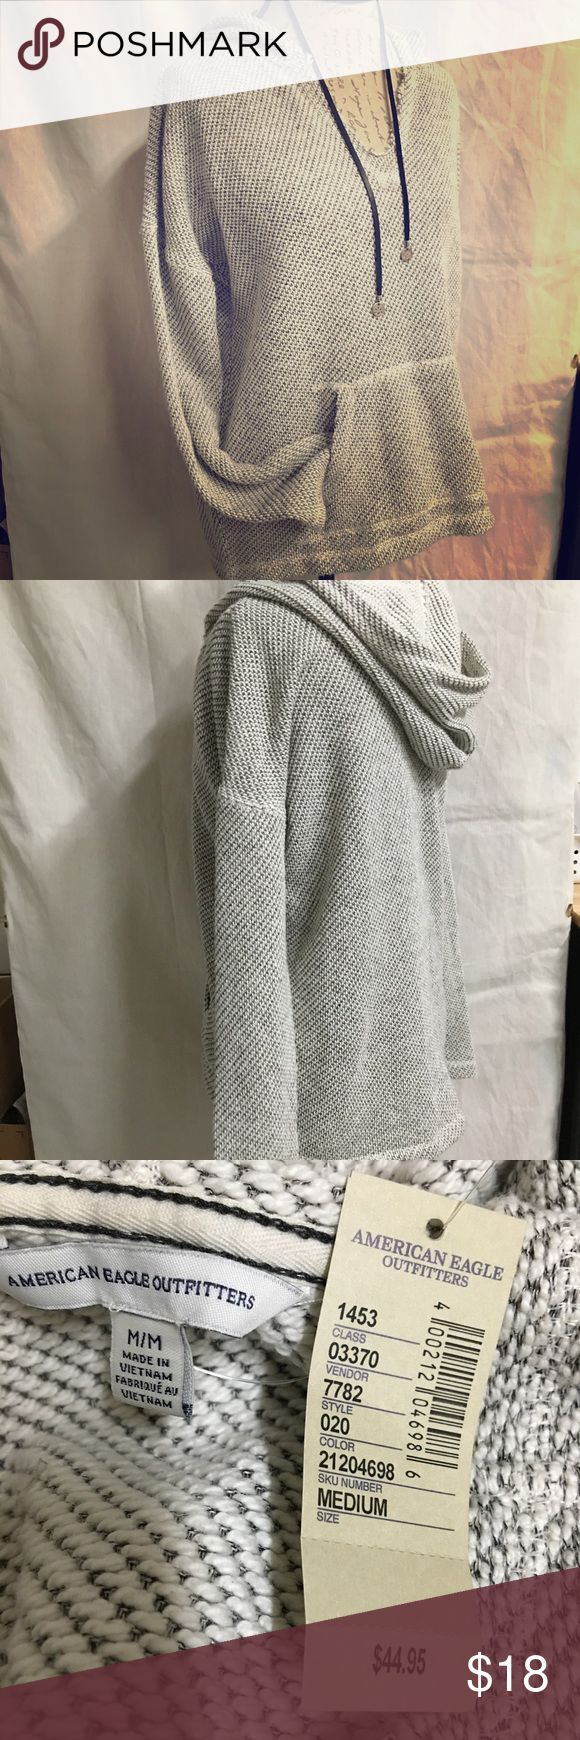 American Eagle pullover hoodie American Eagle Hoodie pullover. Ivory color with gray background size medium. NEW w/tags. American Eagle Outfitters Tops Sweatshirts & Hoodies